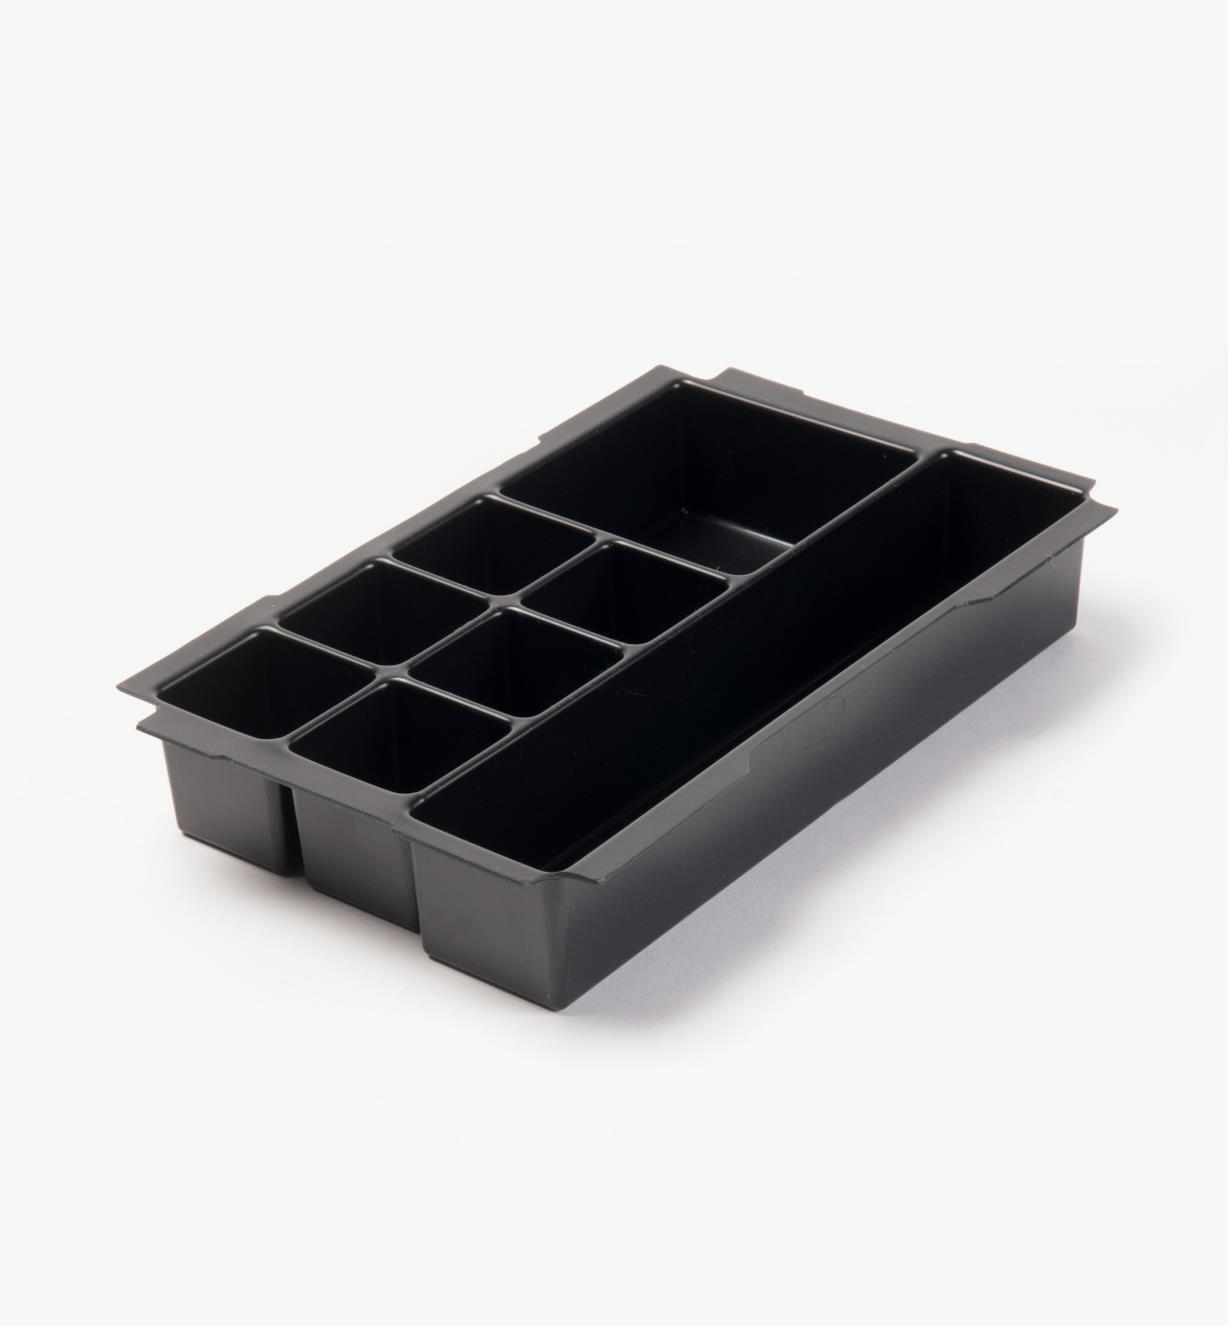 68K4533 - 8-Compartment Tray for T-Loc Mini Systainer